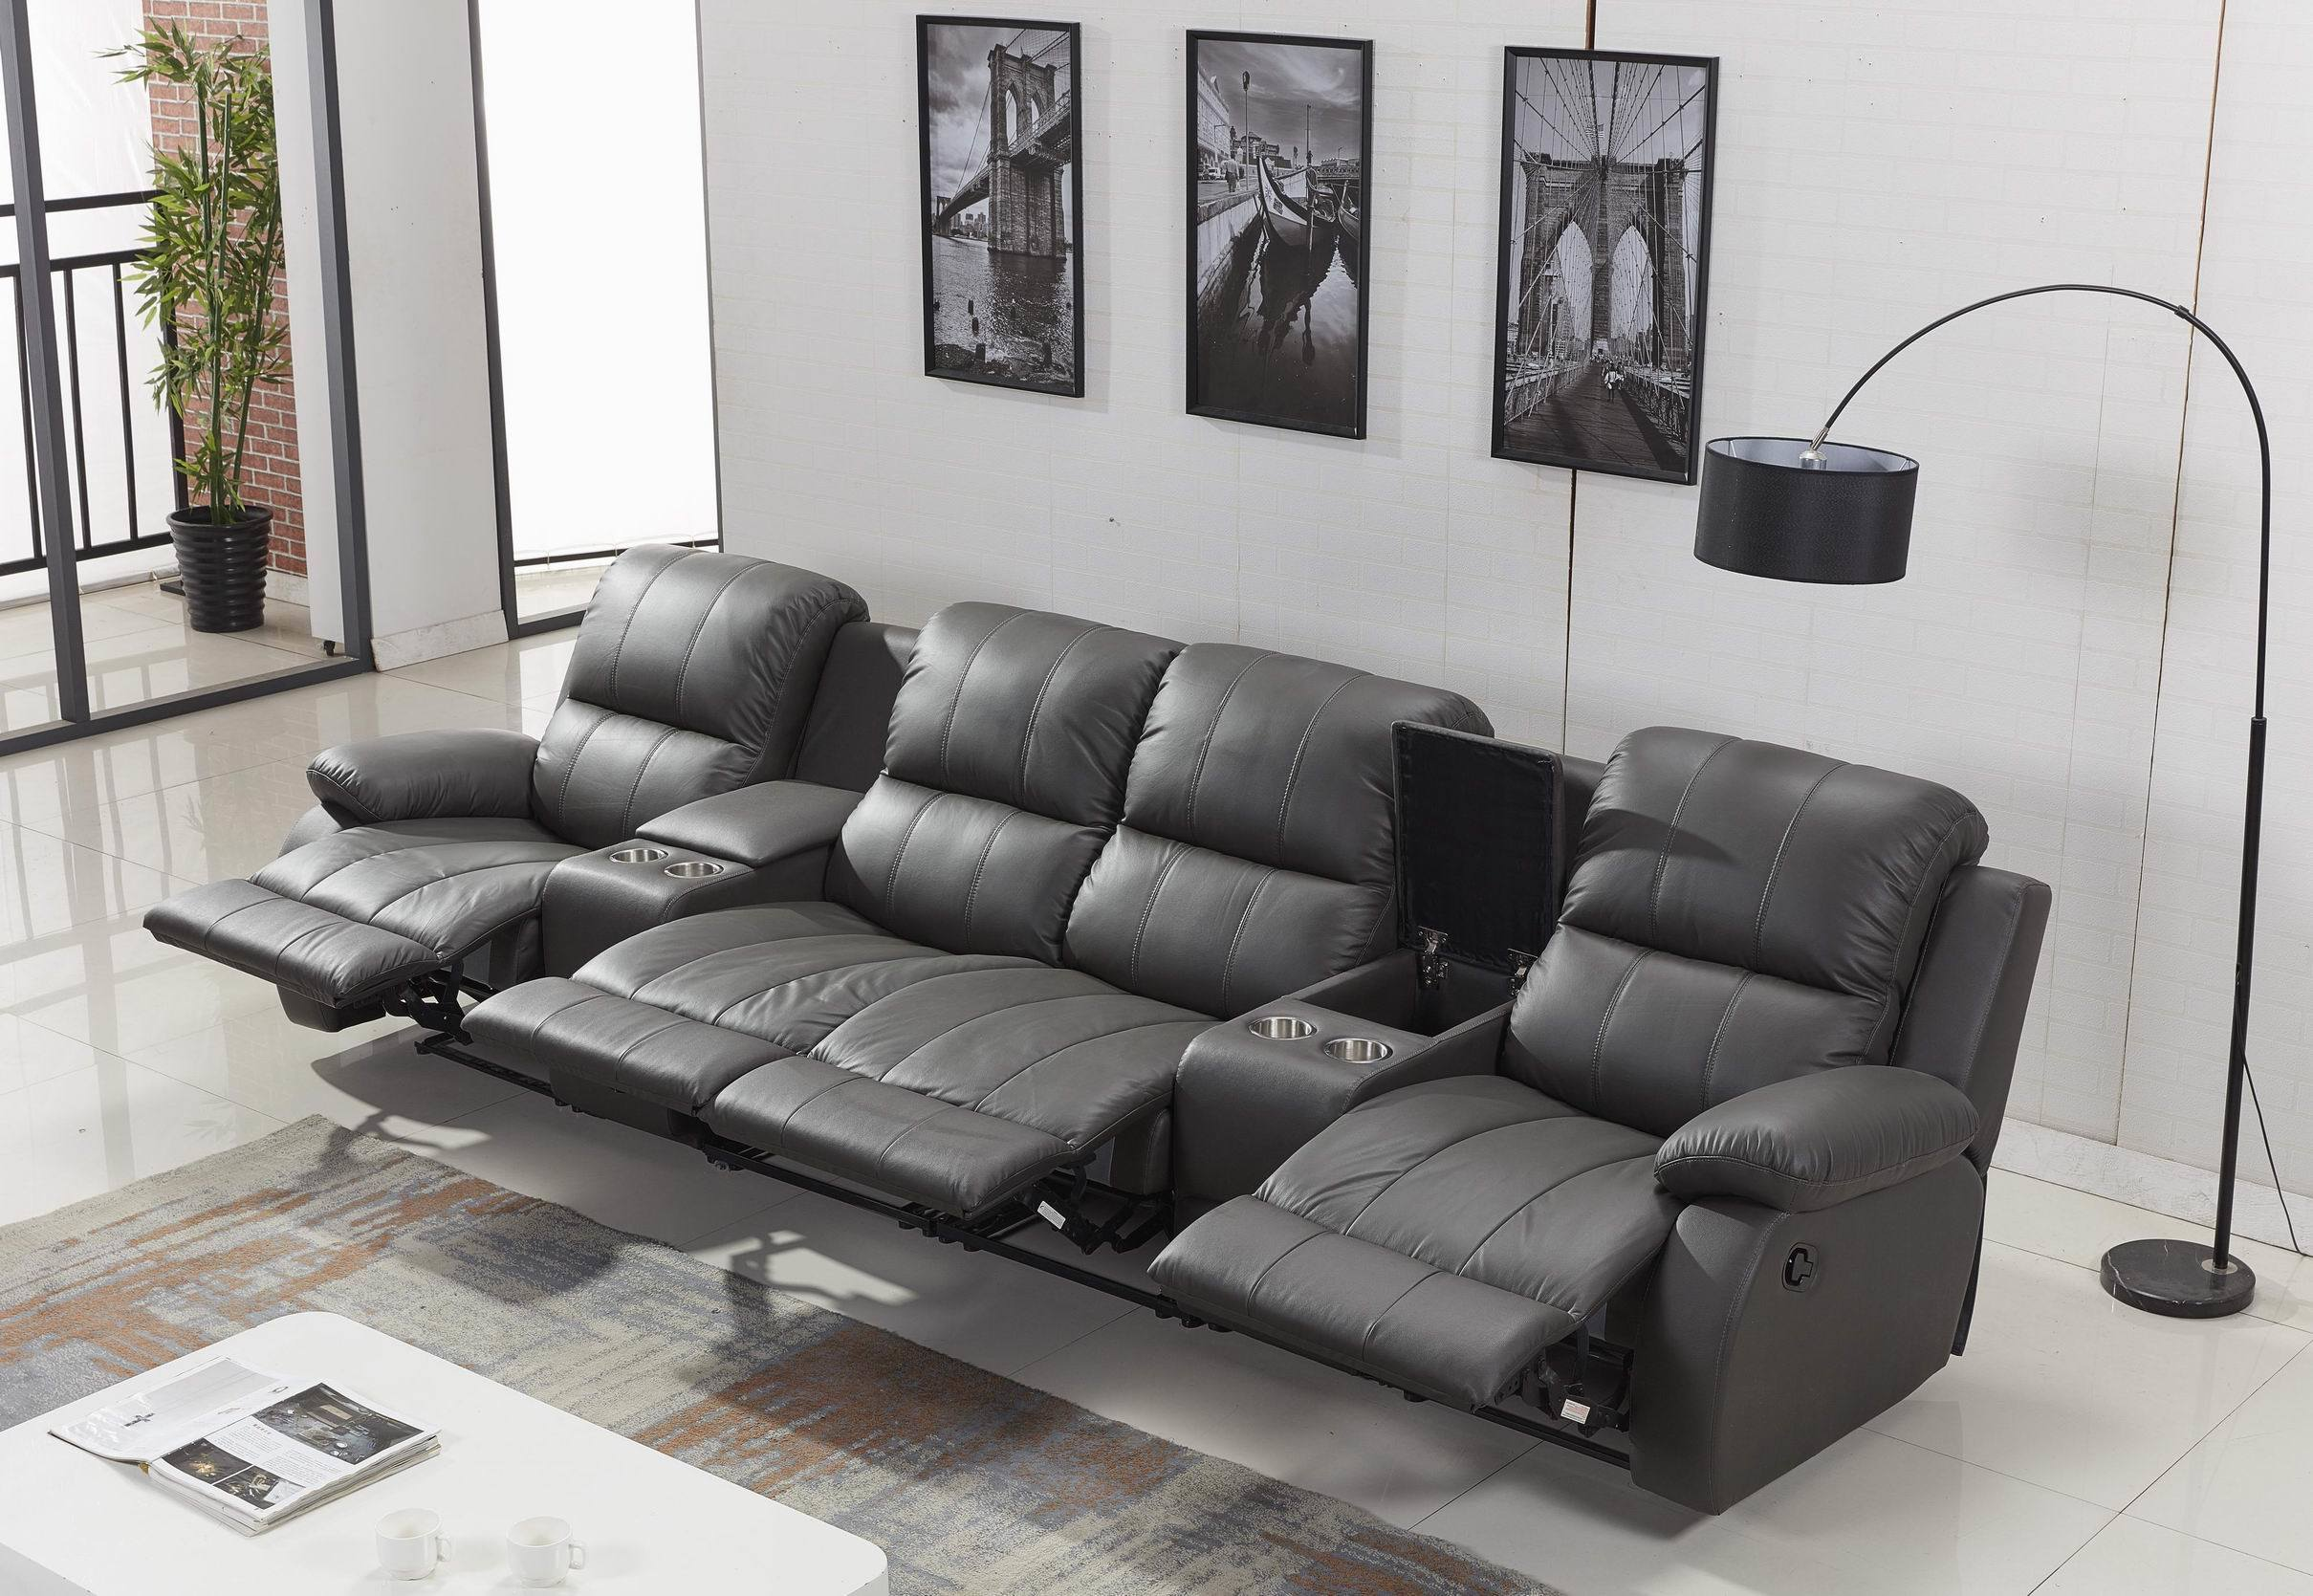 Leather Electric Recliner Sofa of Recliner Massage Sofa and Recliner Leather Sofa Home Cinema Chairs Home Cinema Recliner Cinema Sofa